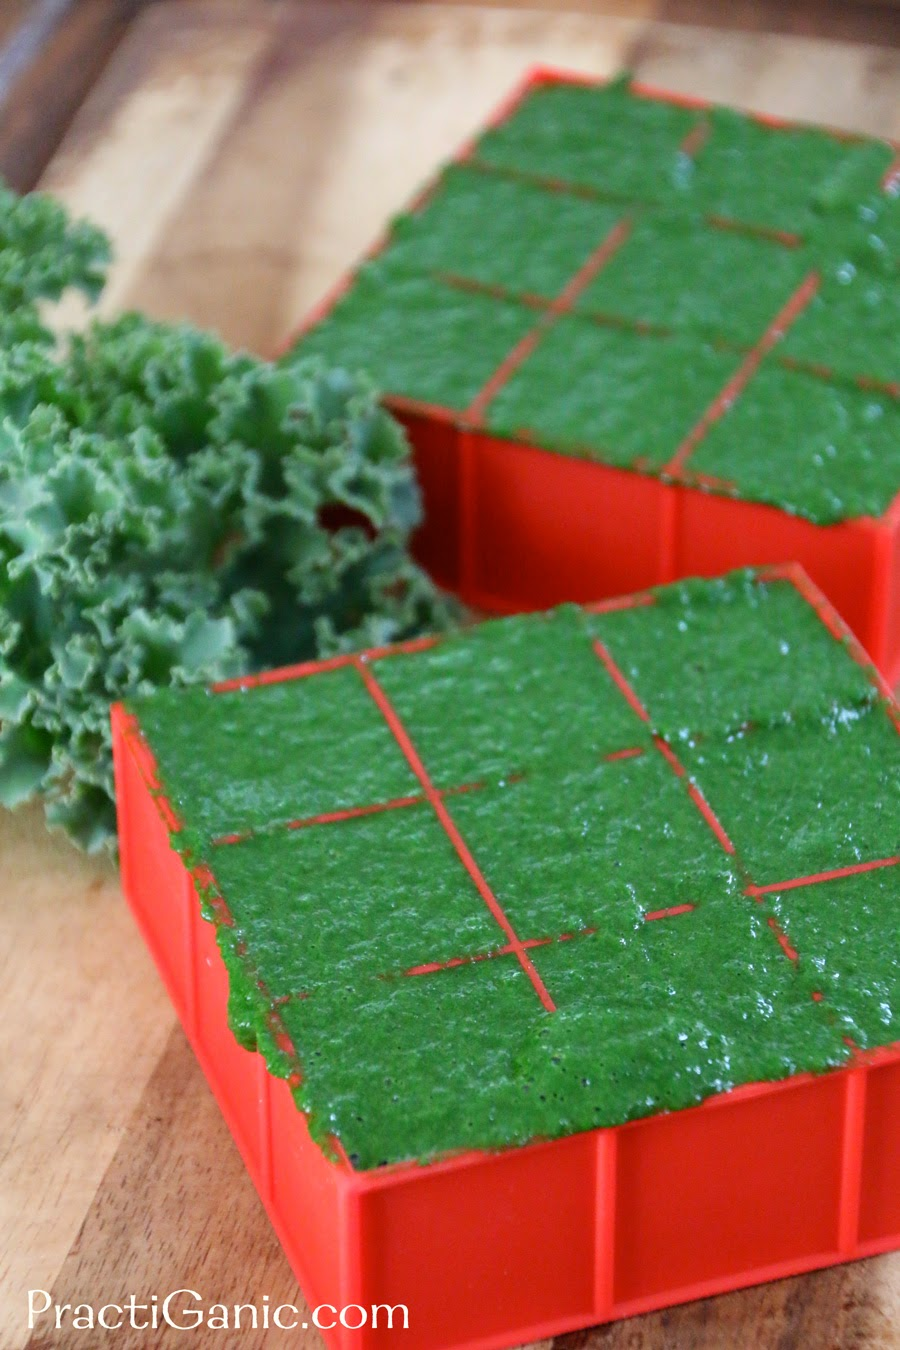 How to Freeze Kale, Spinach and Other Hearty Greens